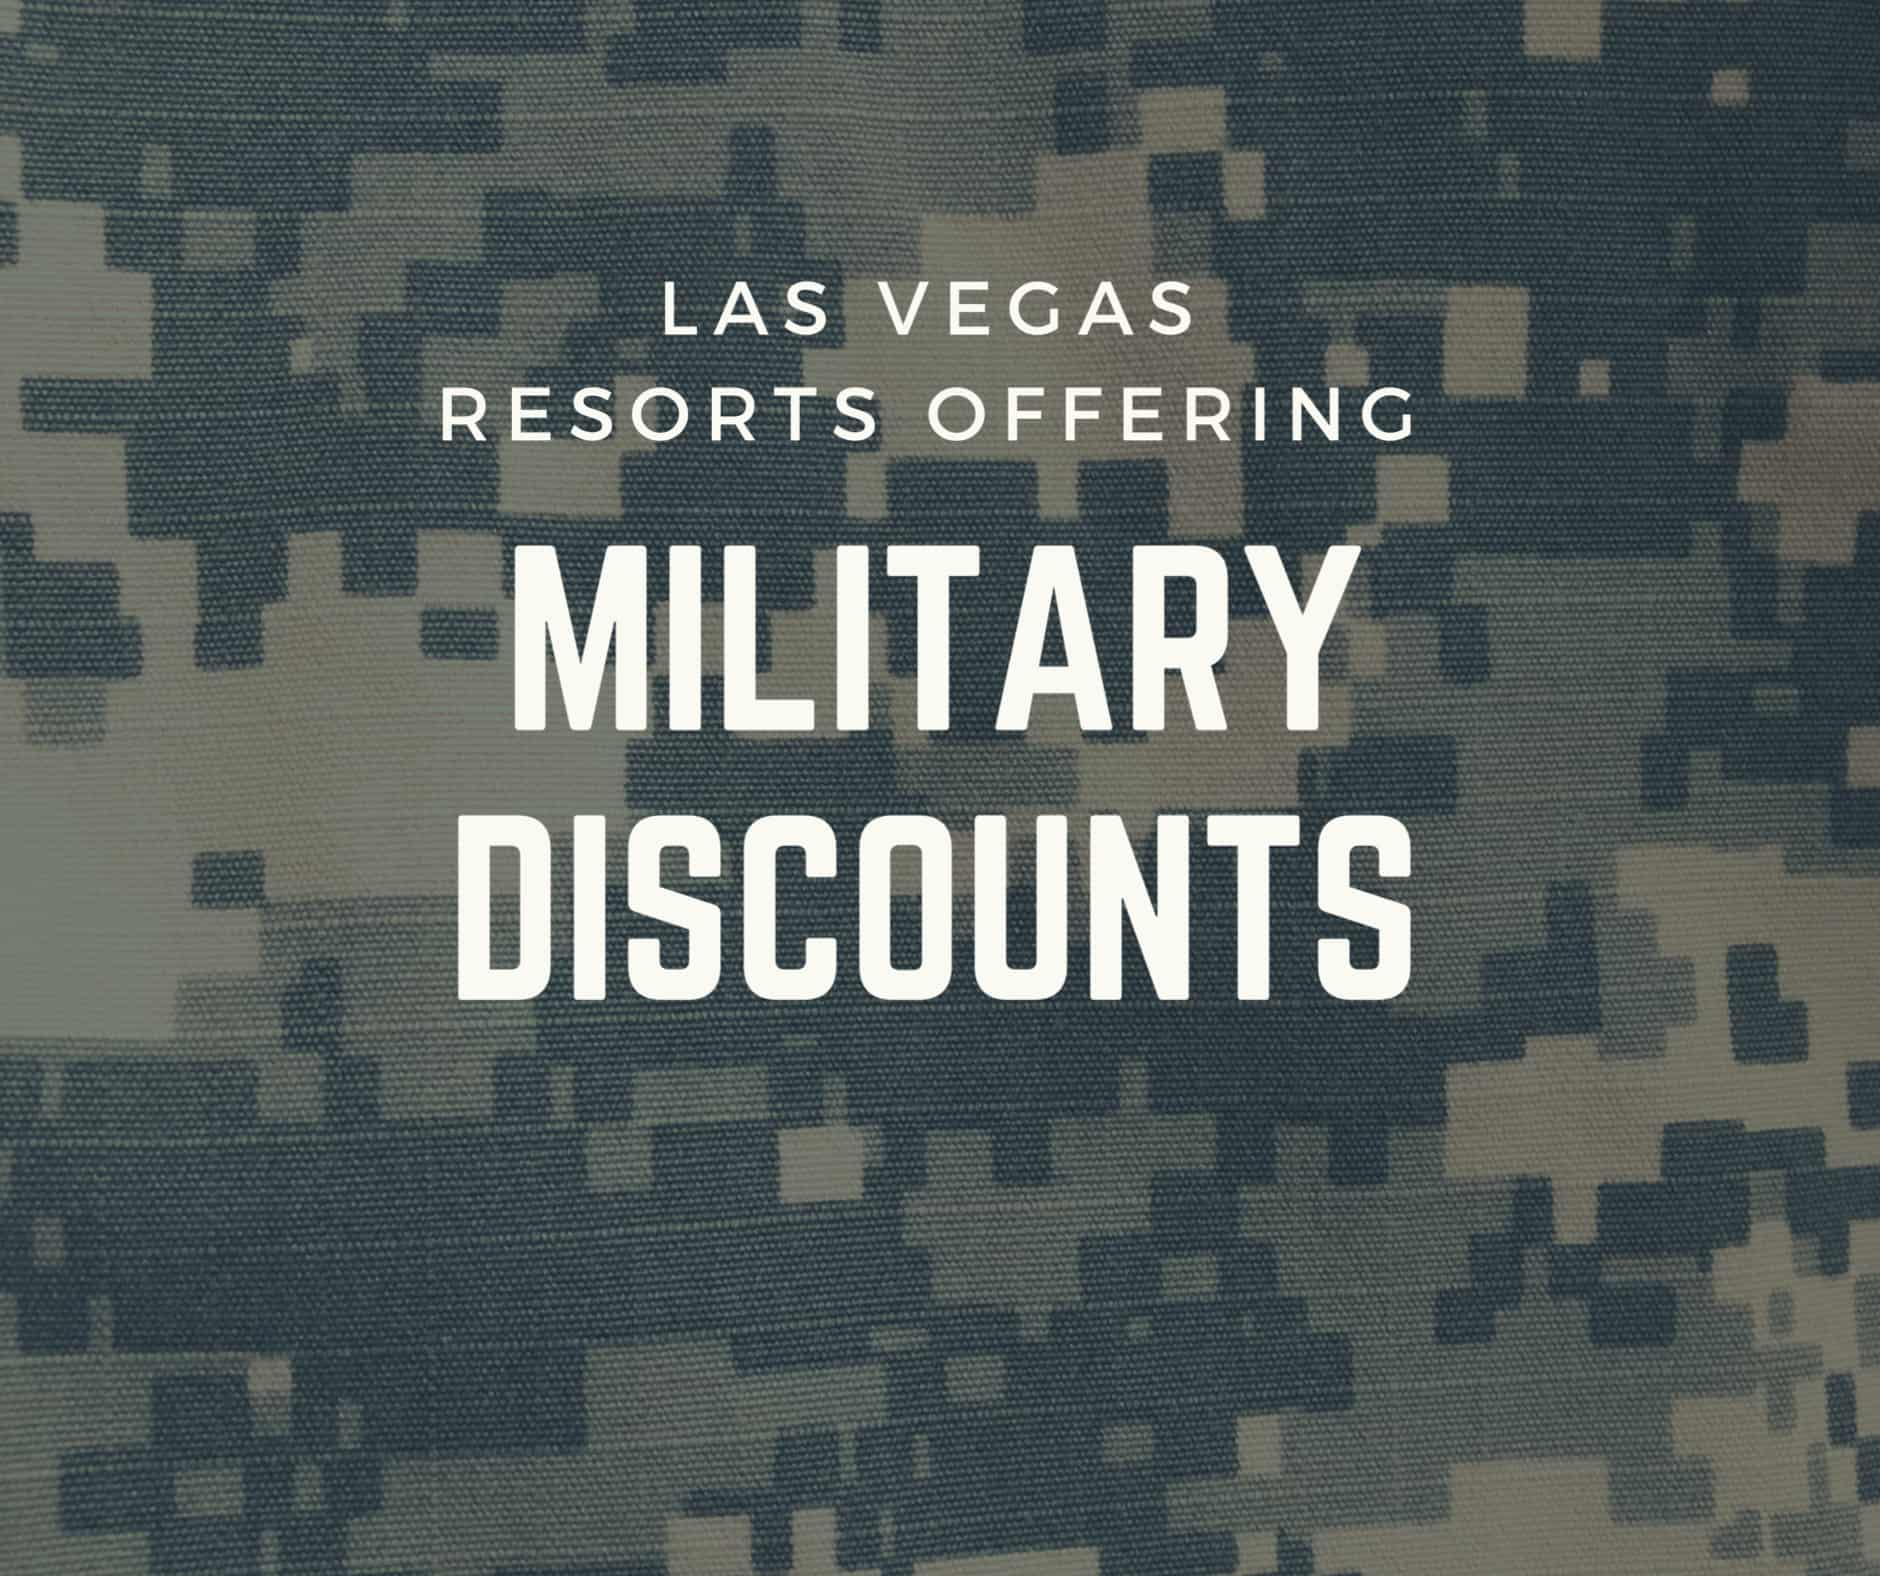 Vegas Hotels That Offer Military and Veteran Discounts